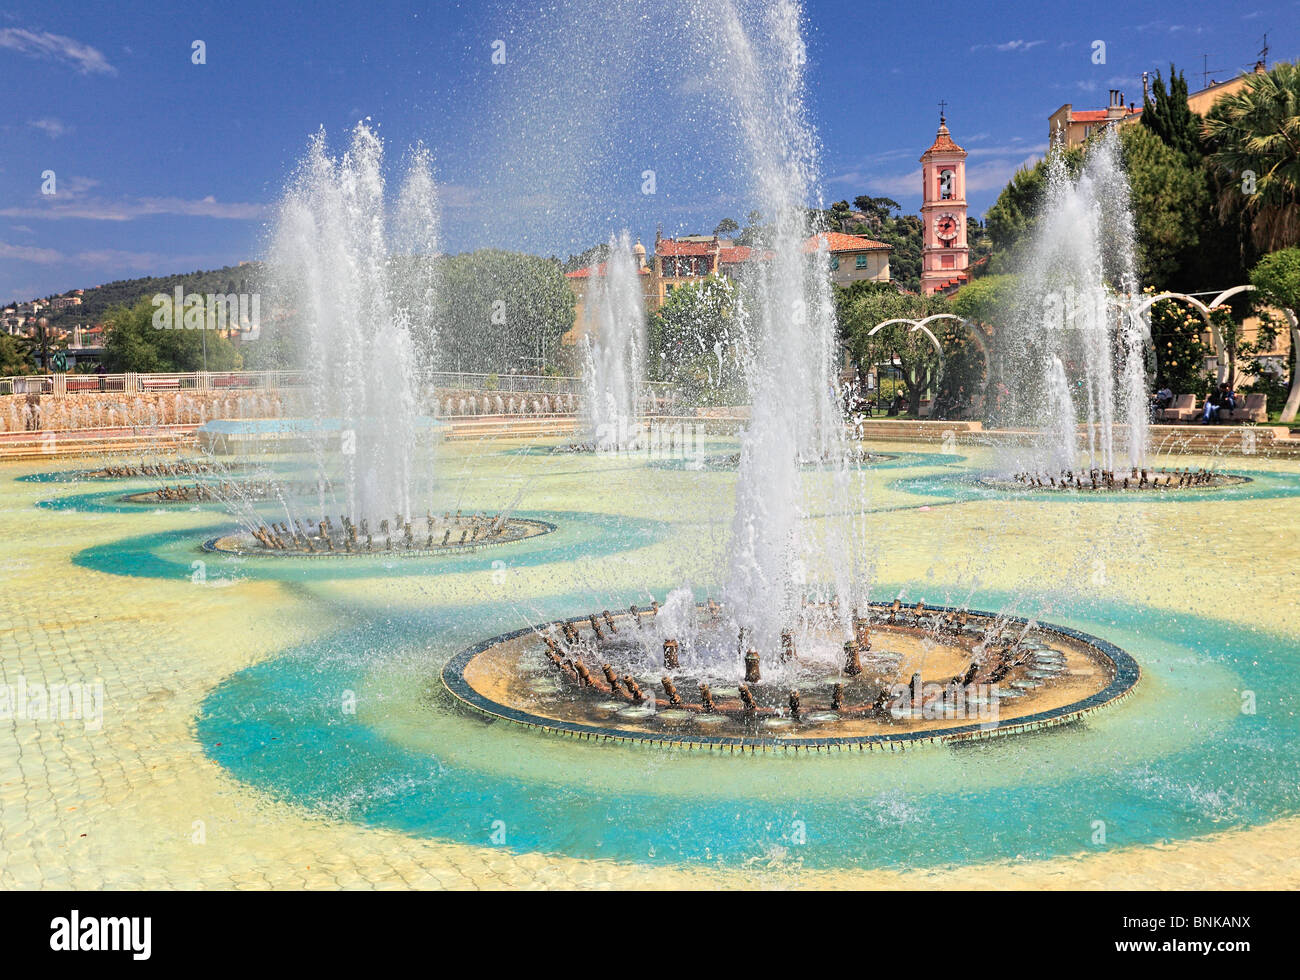 Fountains at Place Massena in downtown Nice on the French Riviera (Cote d'Azur) - Stock Image